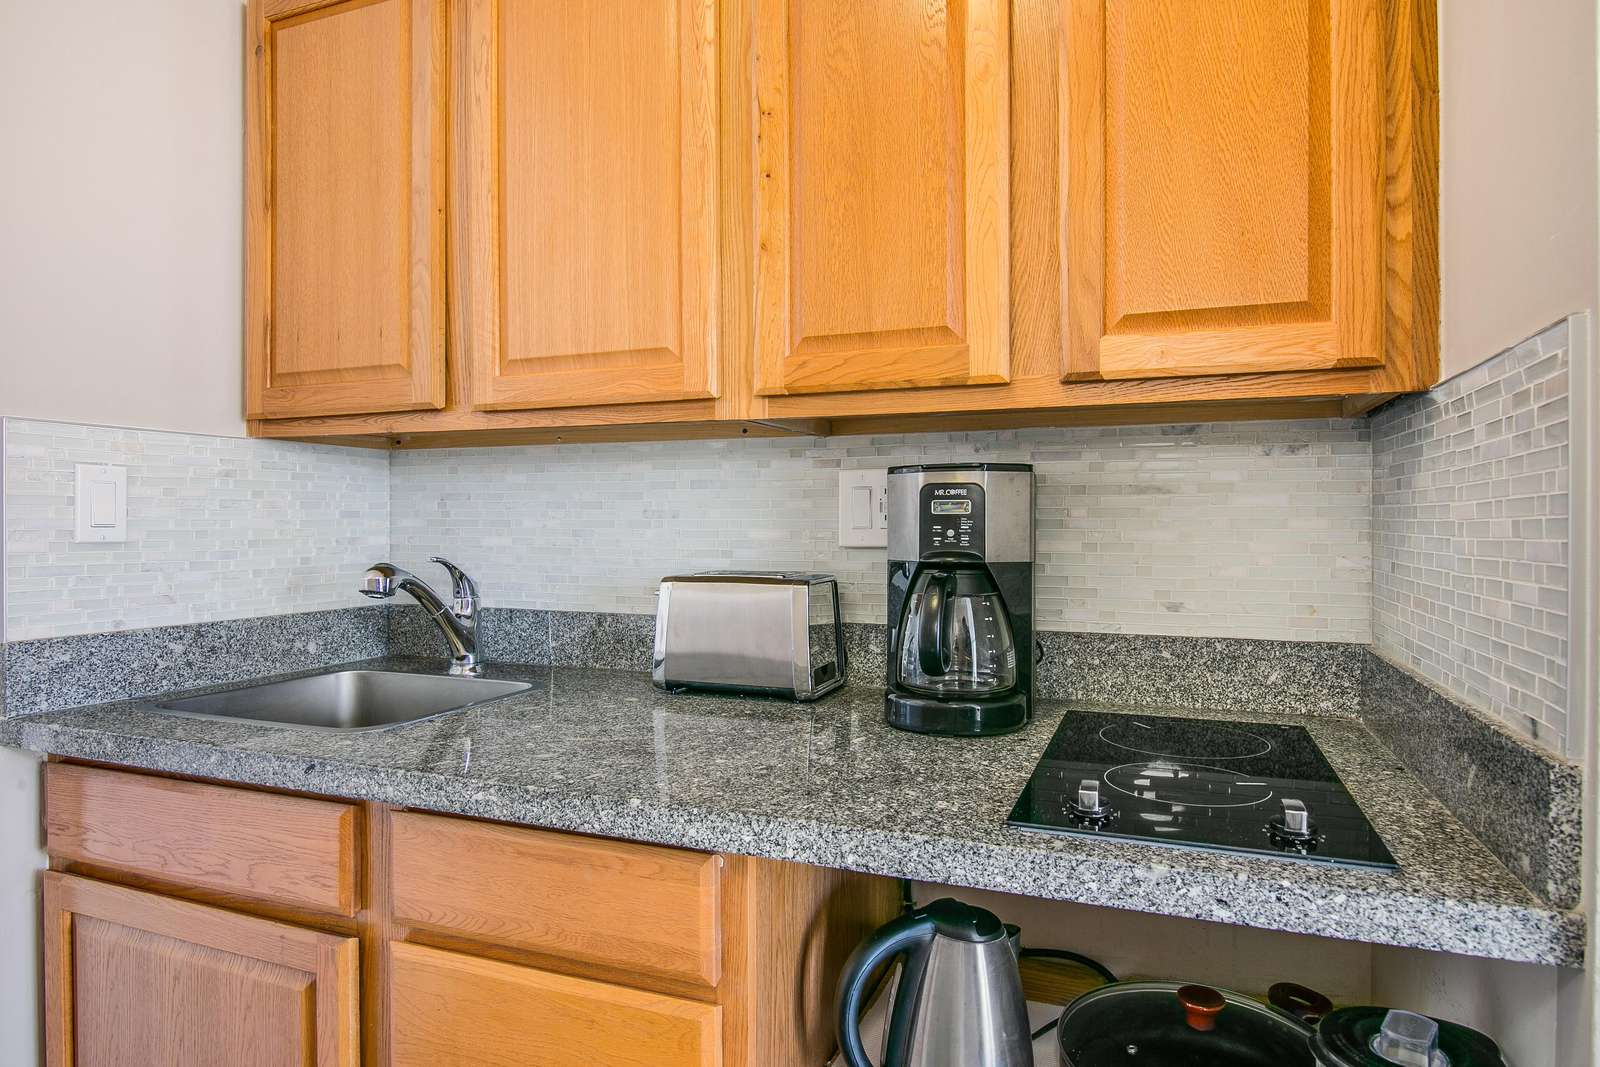 Stove top, Coffee maker, Toaster and pots a& pans included